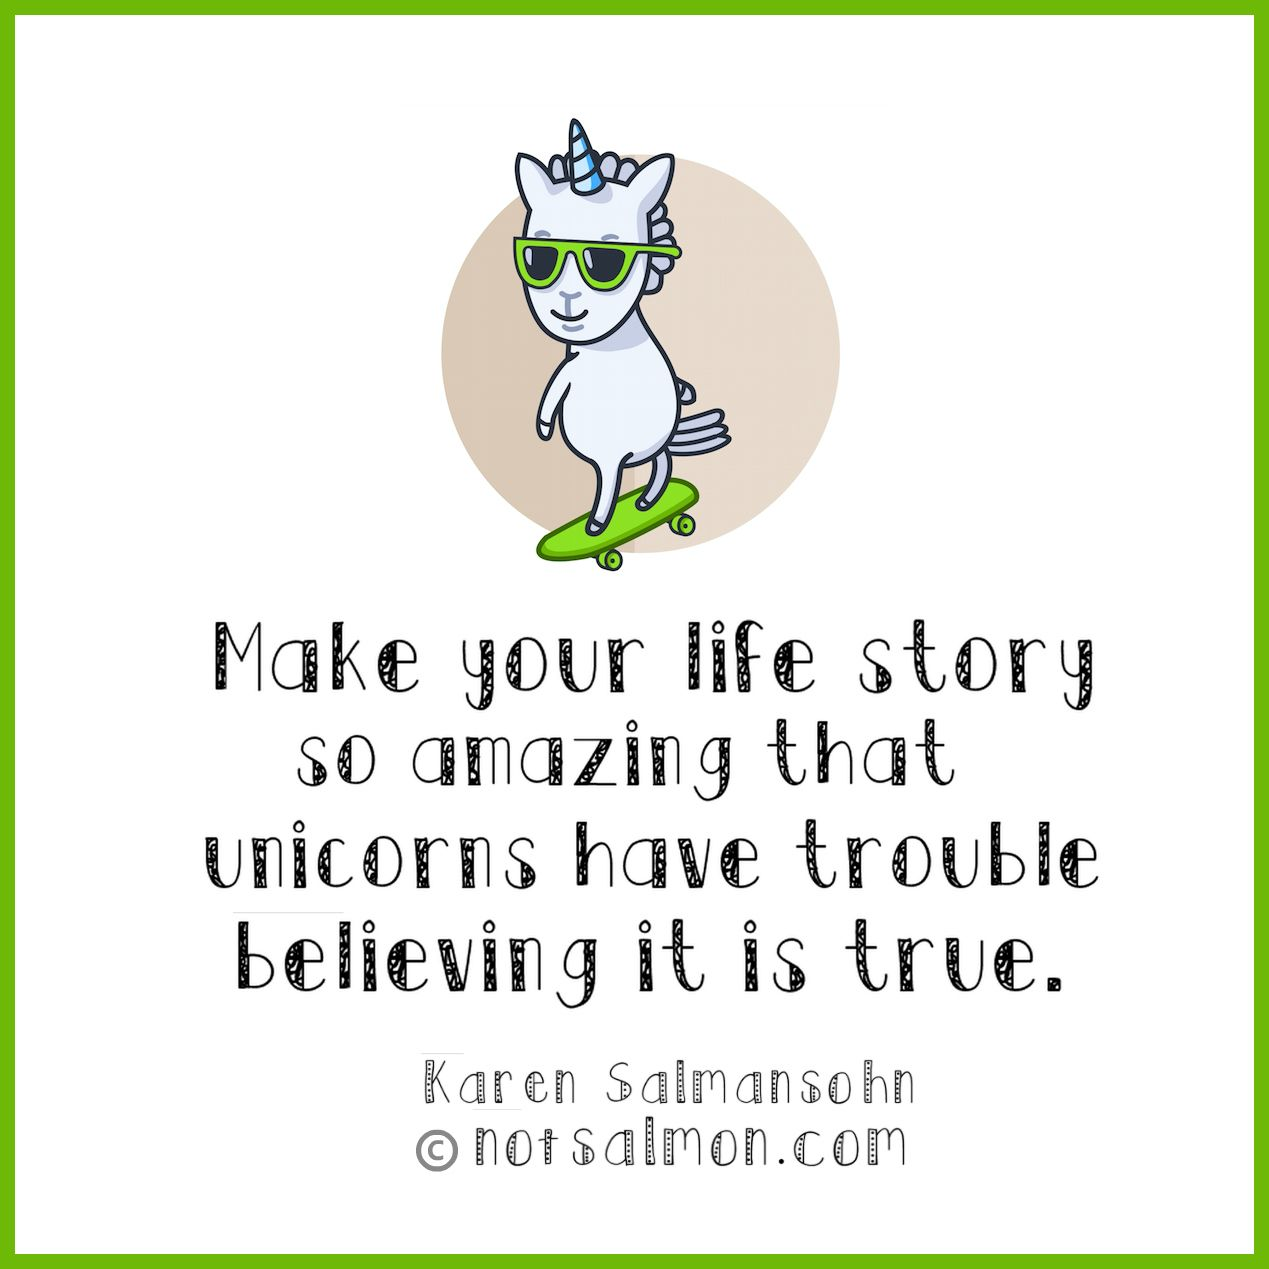 Your So Amazing: Make Your Life Story So Amazing That Unicorns Have Trouble